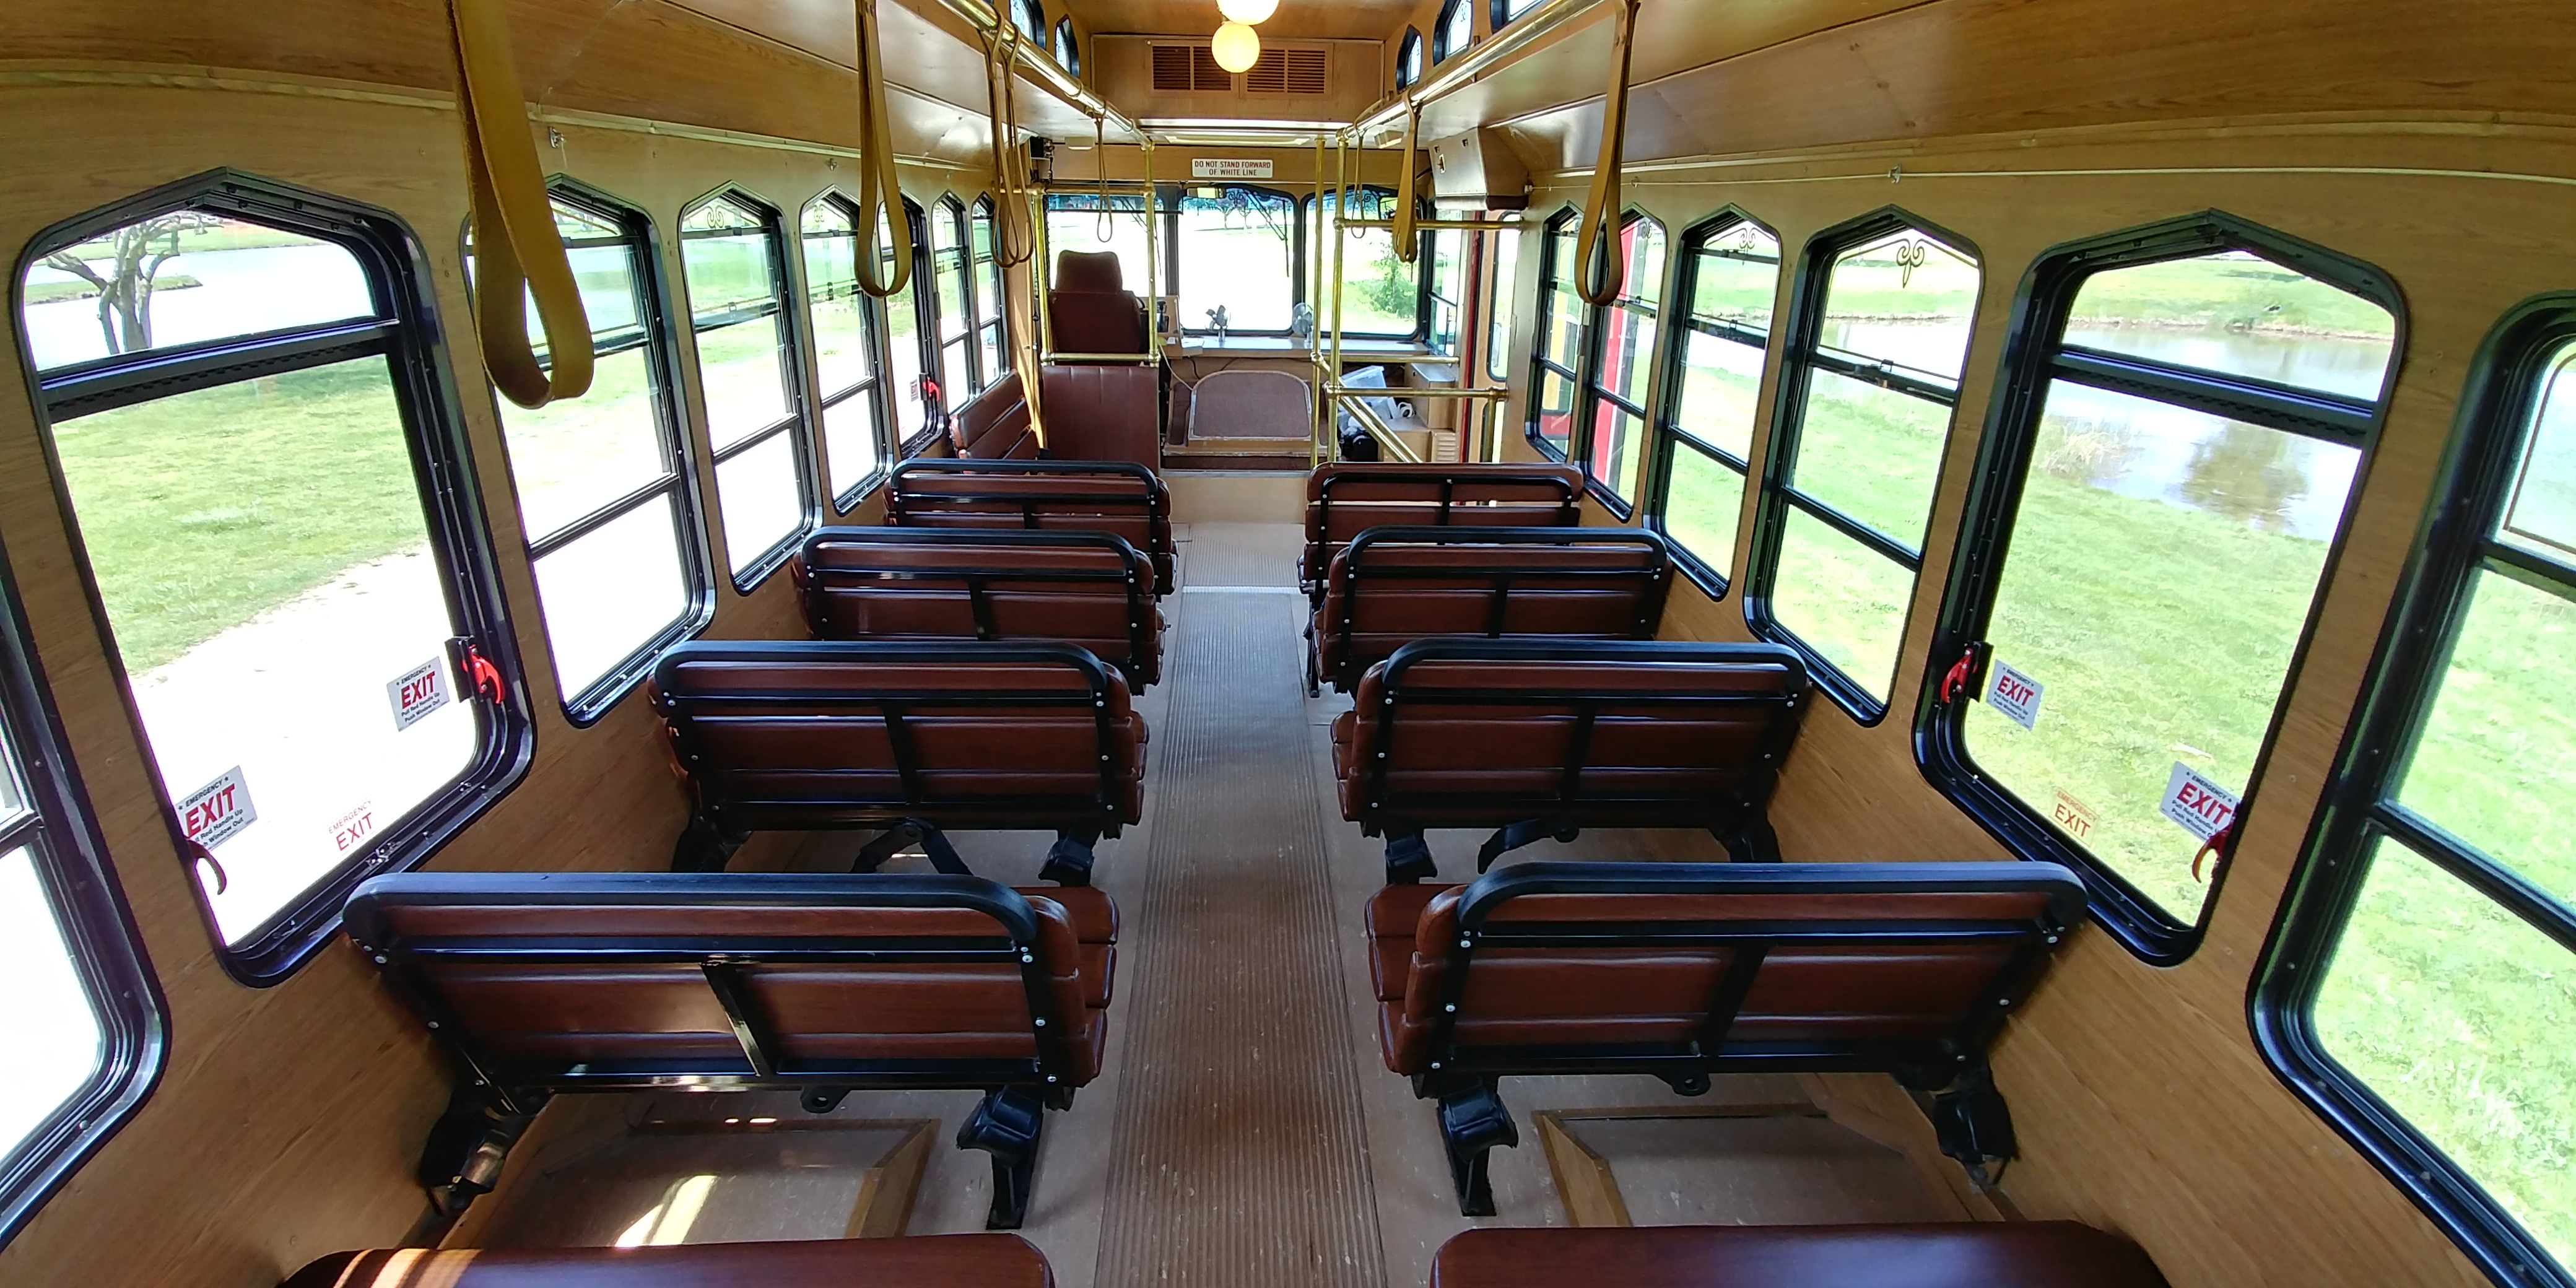 27 Passenger Trolley Interior 3